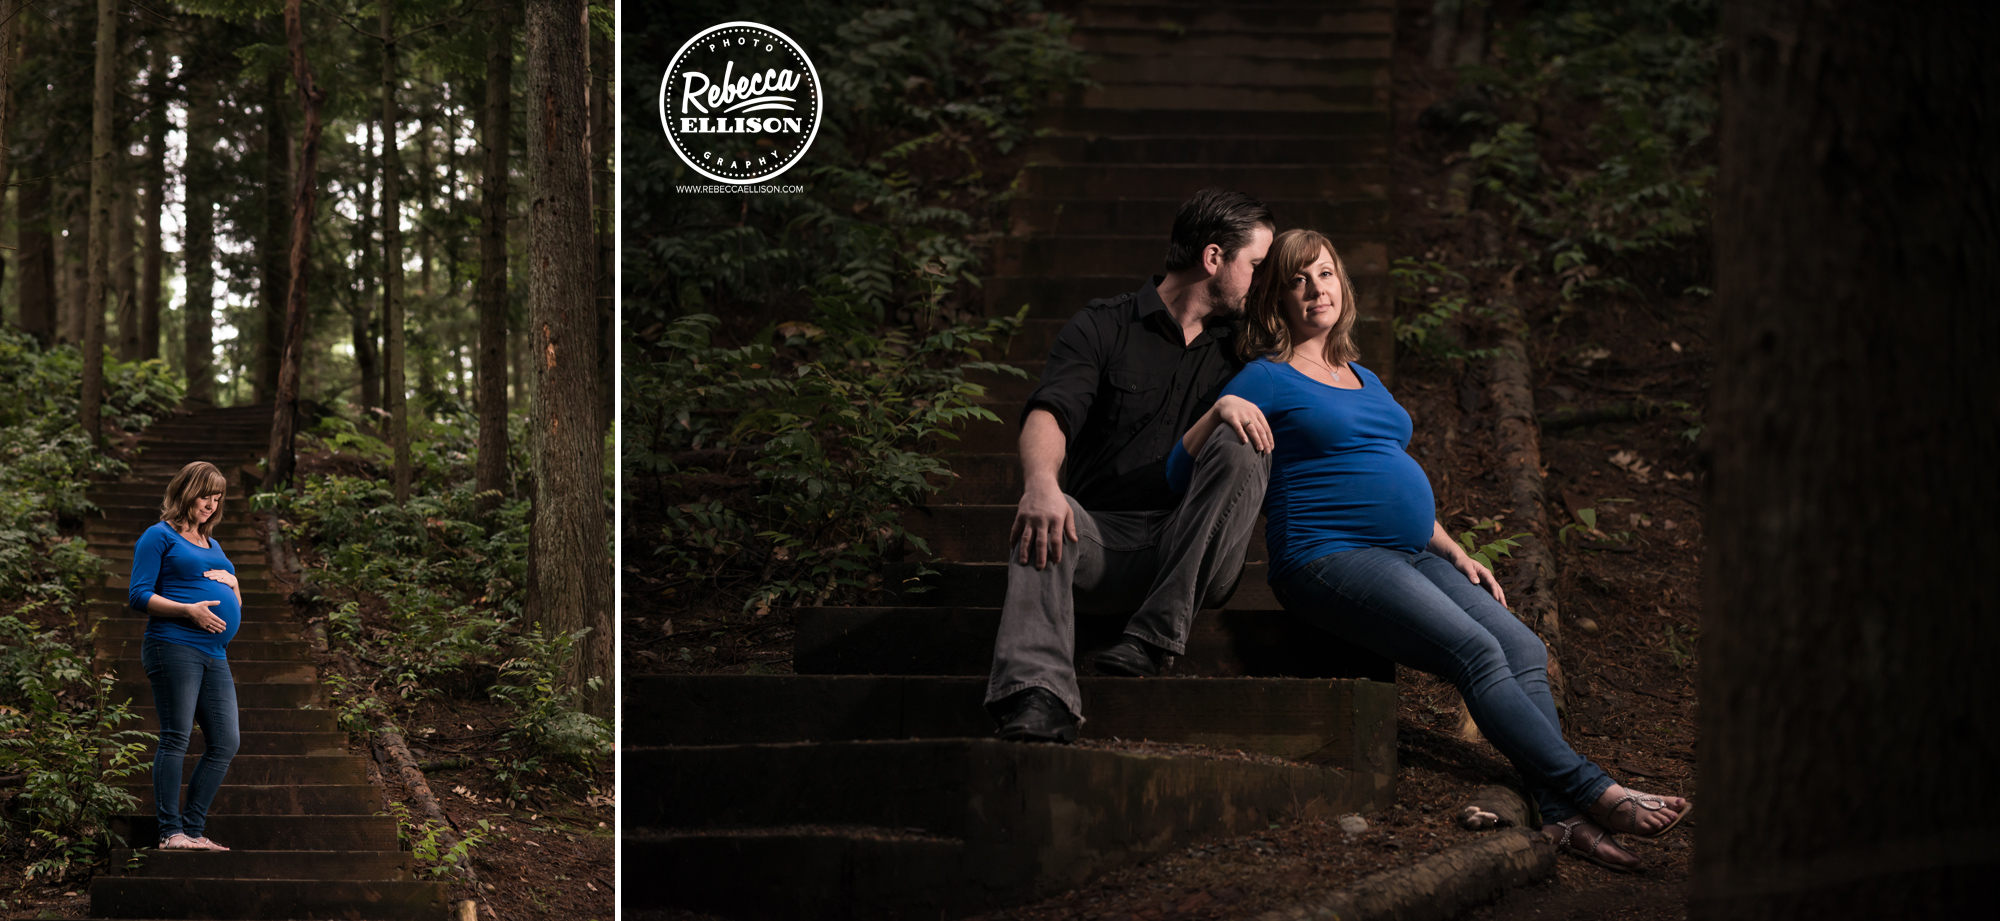 Outdoor pregnancy portraits in a forest setting photographed by Shoreline maternity photographer Rebecca Ellison